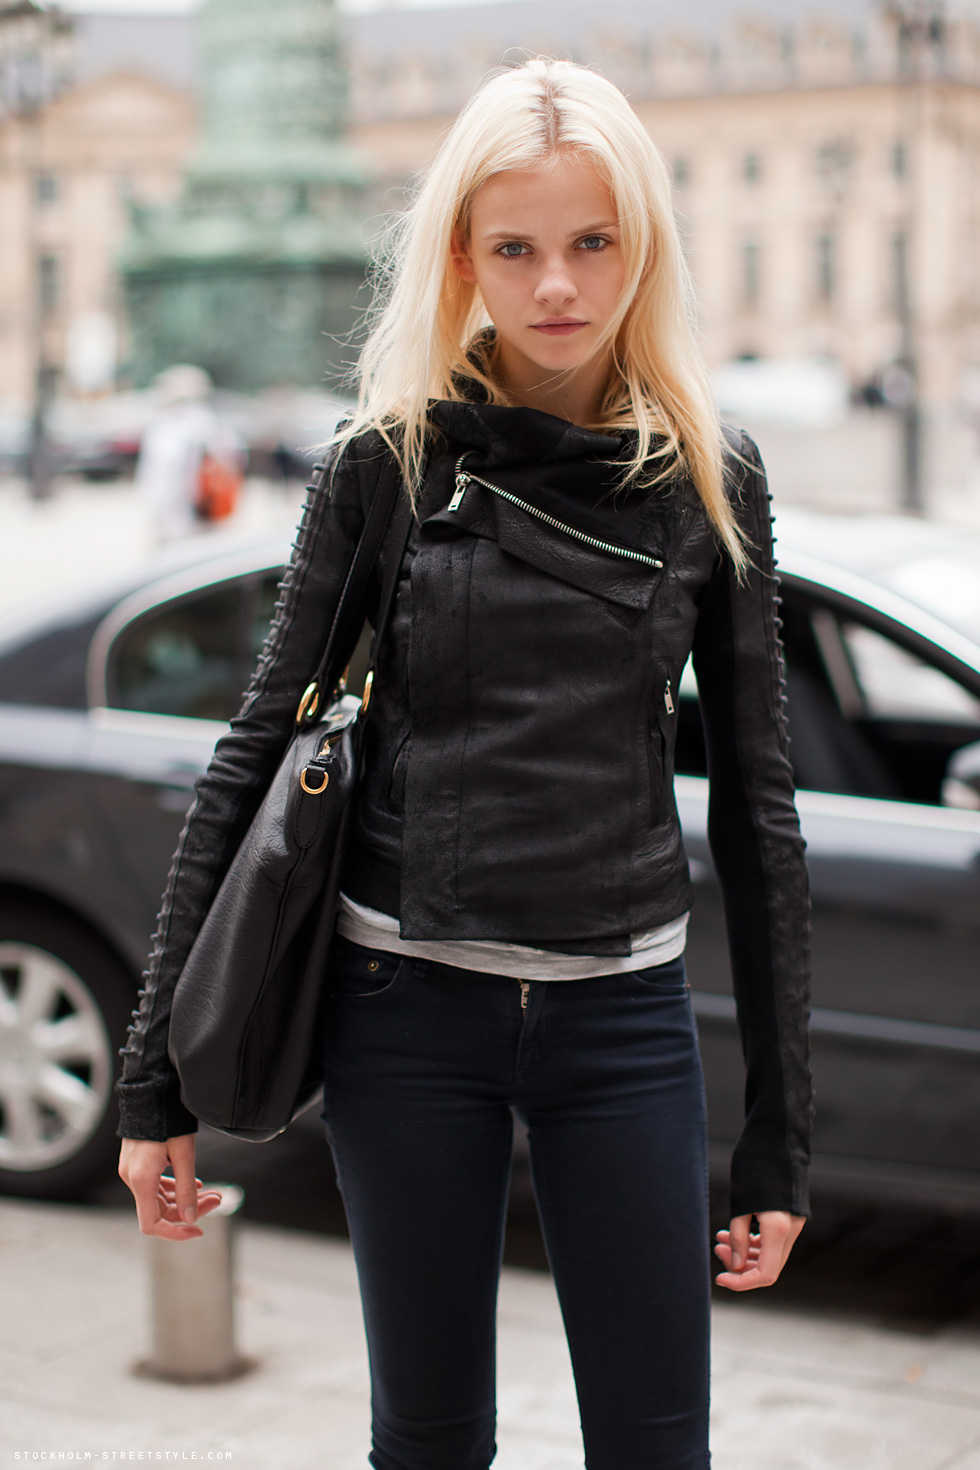 Fatigue jackets in leather look just like they do in cloth: a little loose, with a soft collar and big flap pockets, cinched at the waist and sometimes belted. The effect is similar to a bomber, but more dressed-down and a little more aggressive.